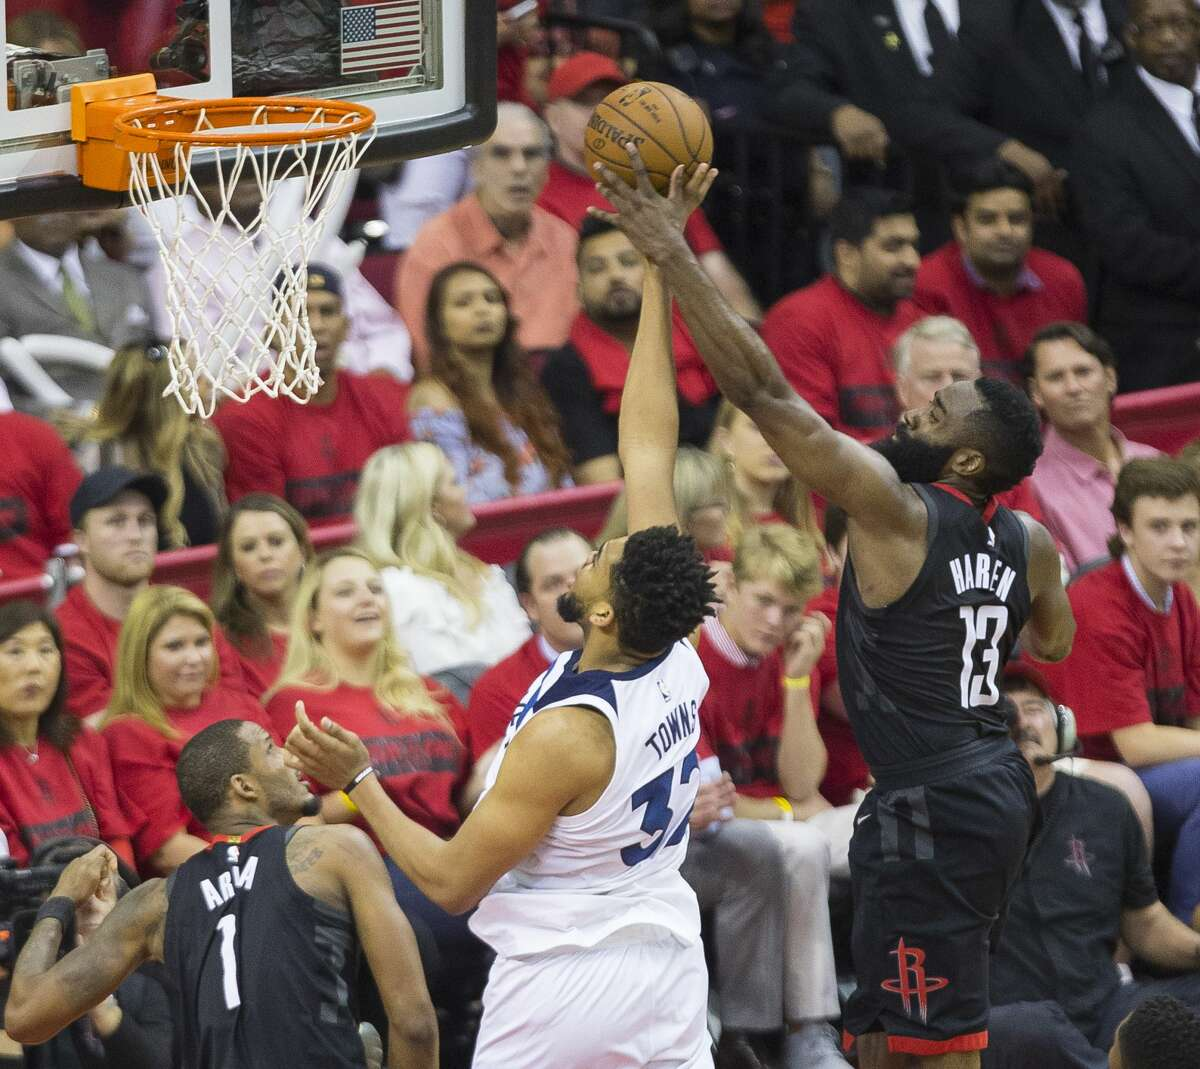 Houston Rockets guard James Harden (13) tries to block a Minnesota Timberwolves center Karl-Anthony Towns (32) during Game 5 of an NBA first round playoff series at Toyota Center, Wednesday, April 25, 2018, in Houston. ( Mark Mulligan / Houston Chronicle )